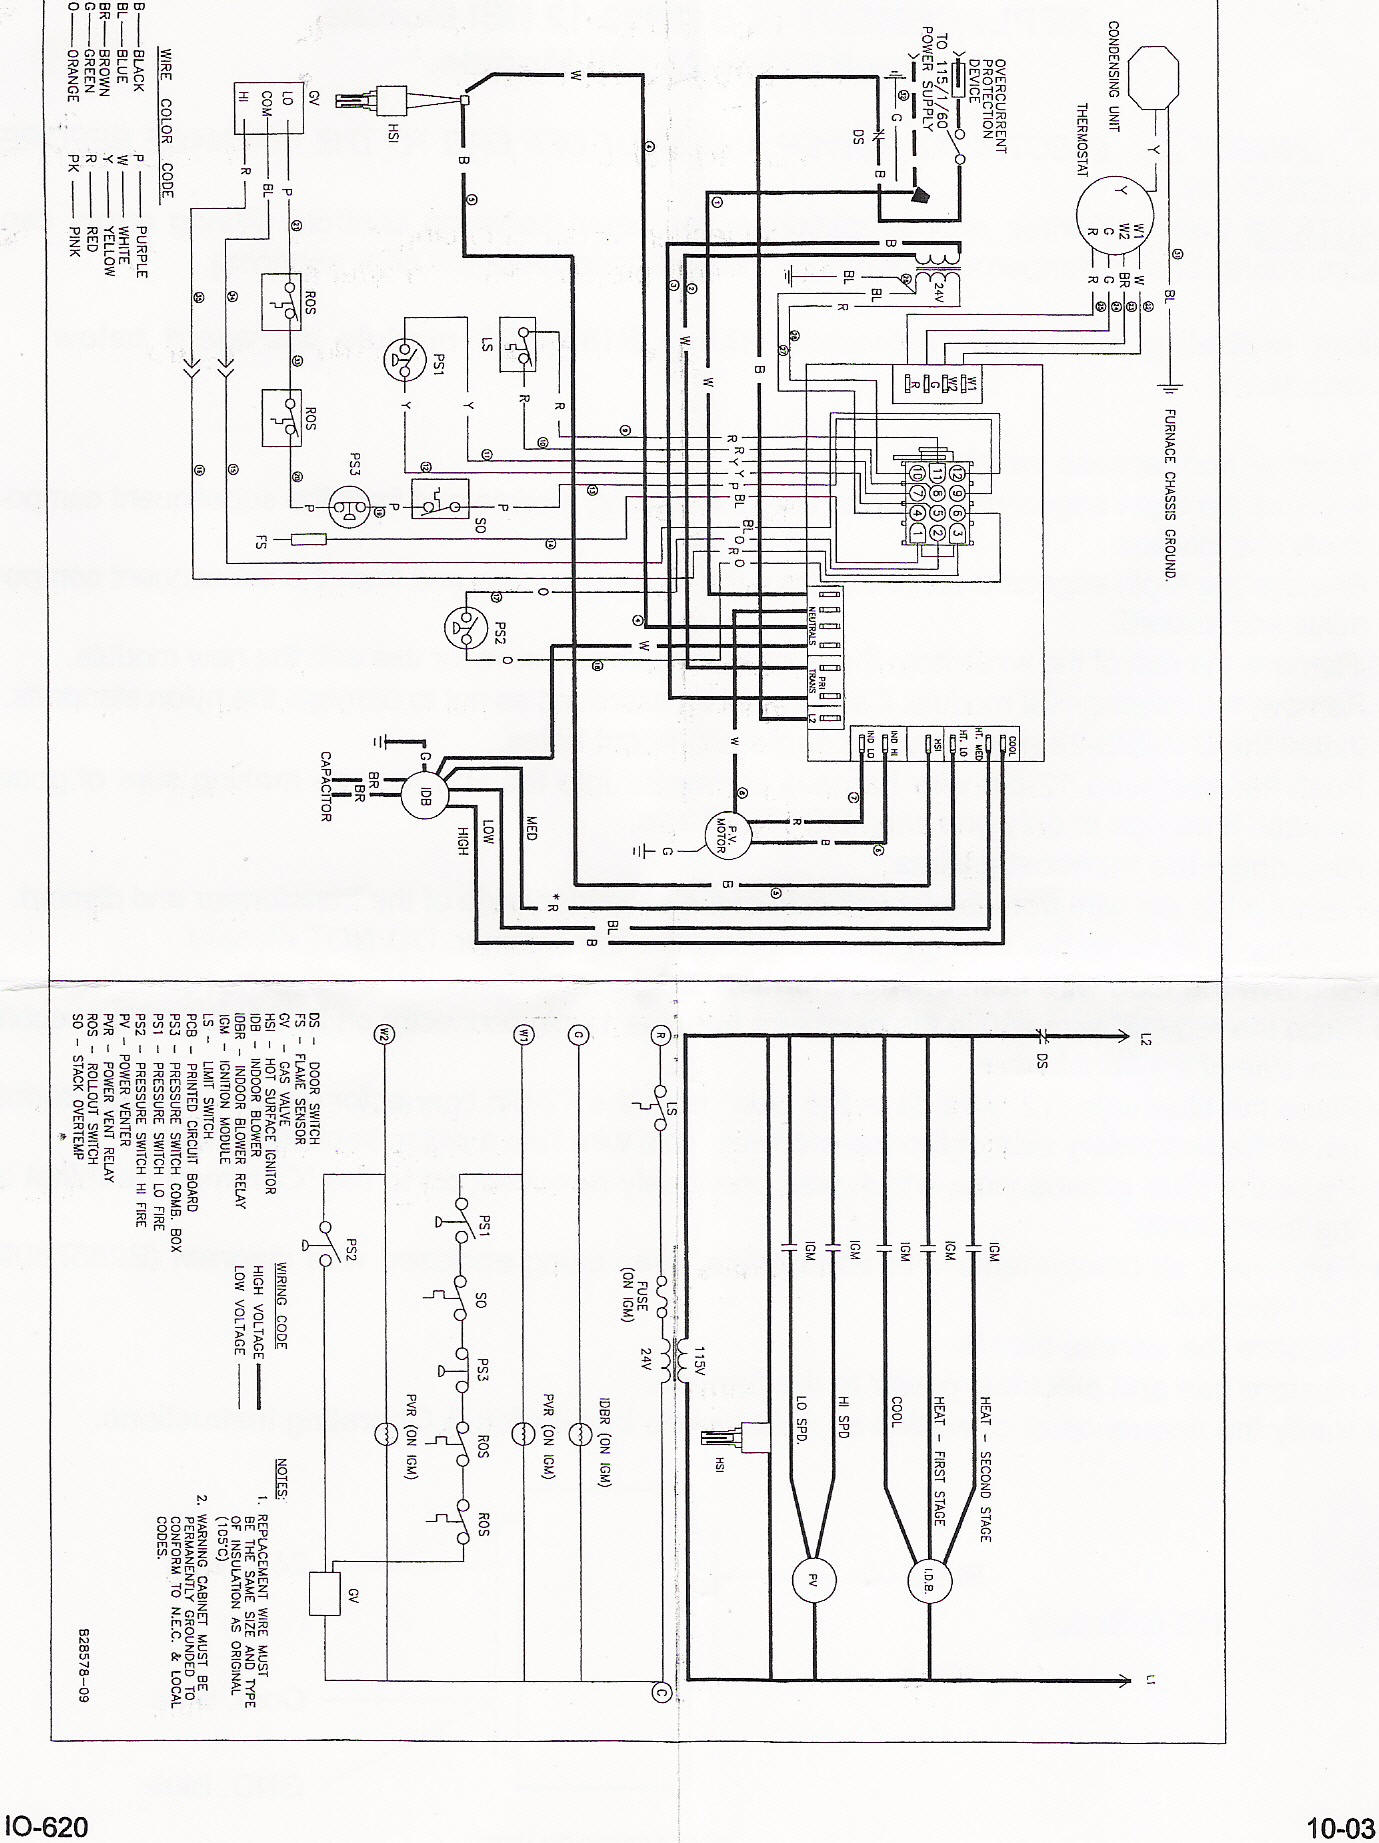 goodma2 instr trane furnace wiring diagram thermal protector wiring diagram trane xe90 wiring diagram at arjmand.co